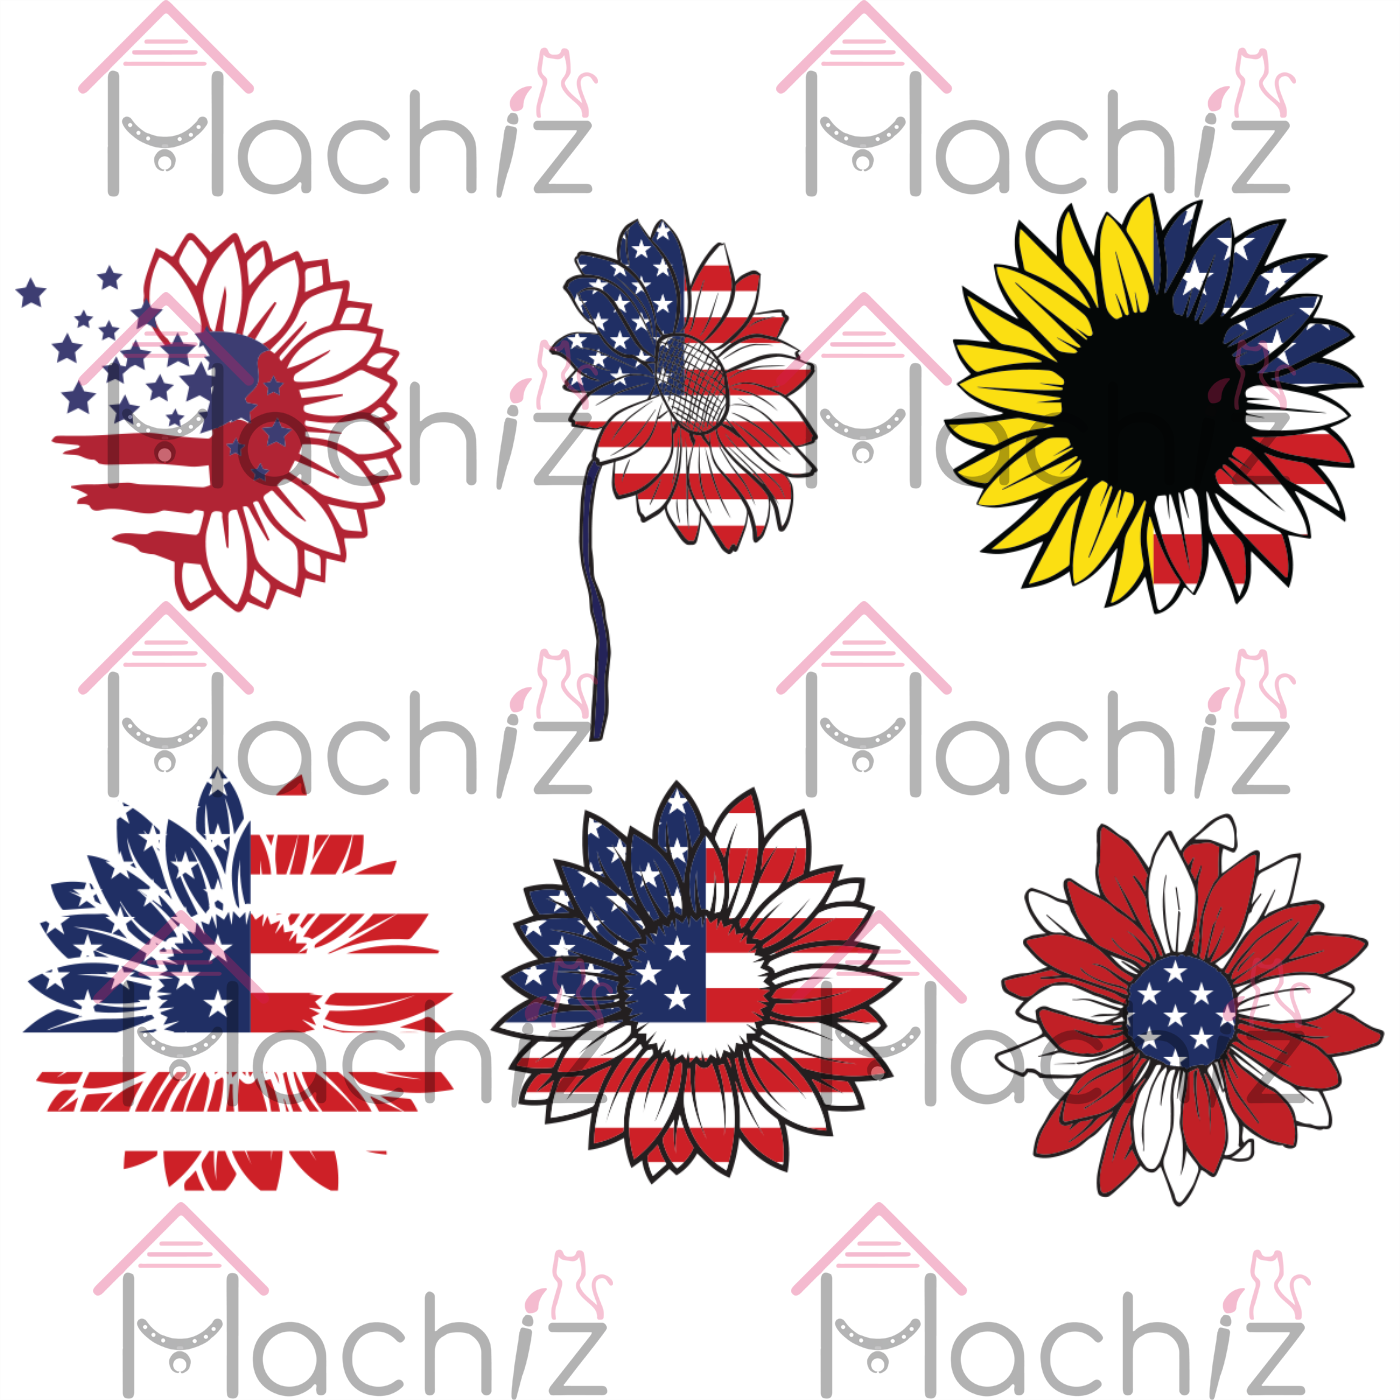 American Flag Sunflower svg, Trending Svg, Patriotic Sunflower Svg, sunflower svg, sunflower bundle svg, american flag svg, independence svg, Files For Silhouette, Files For Cricut, SVG, DXF, EPS, PNG, Instant Download